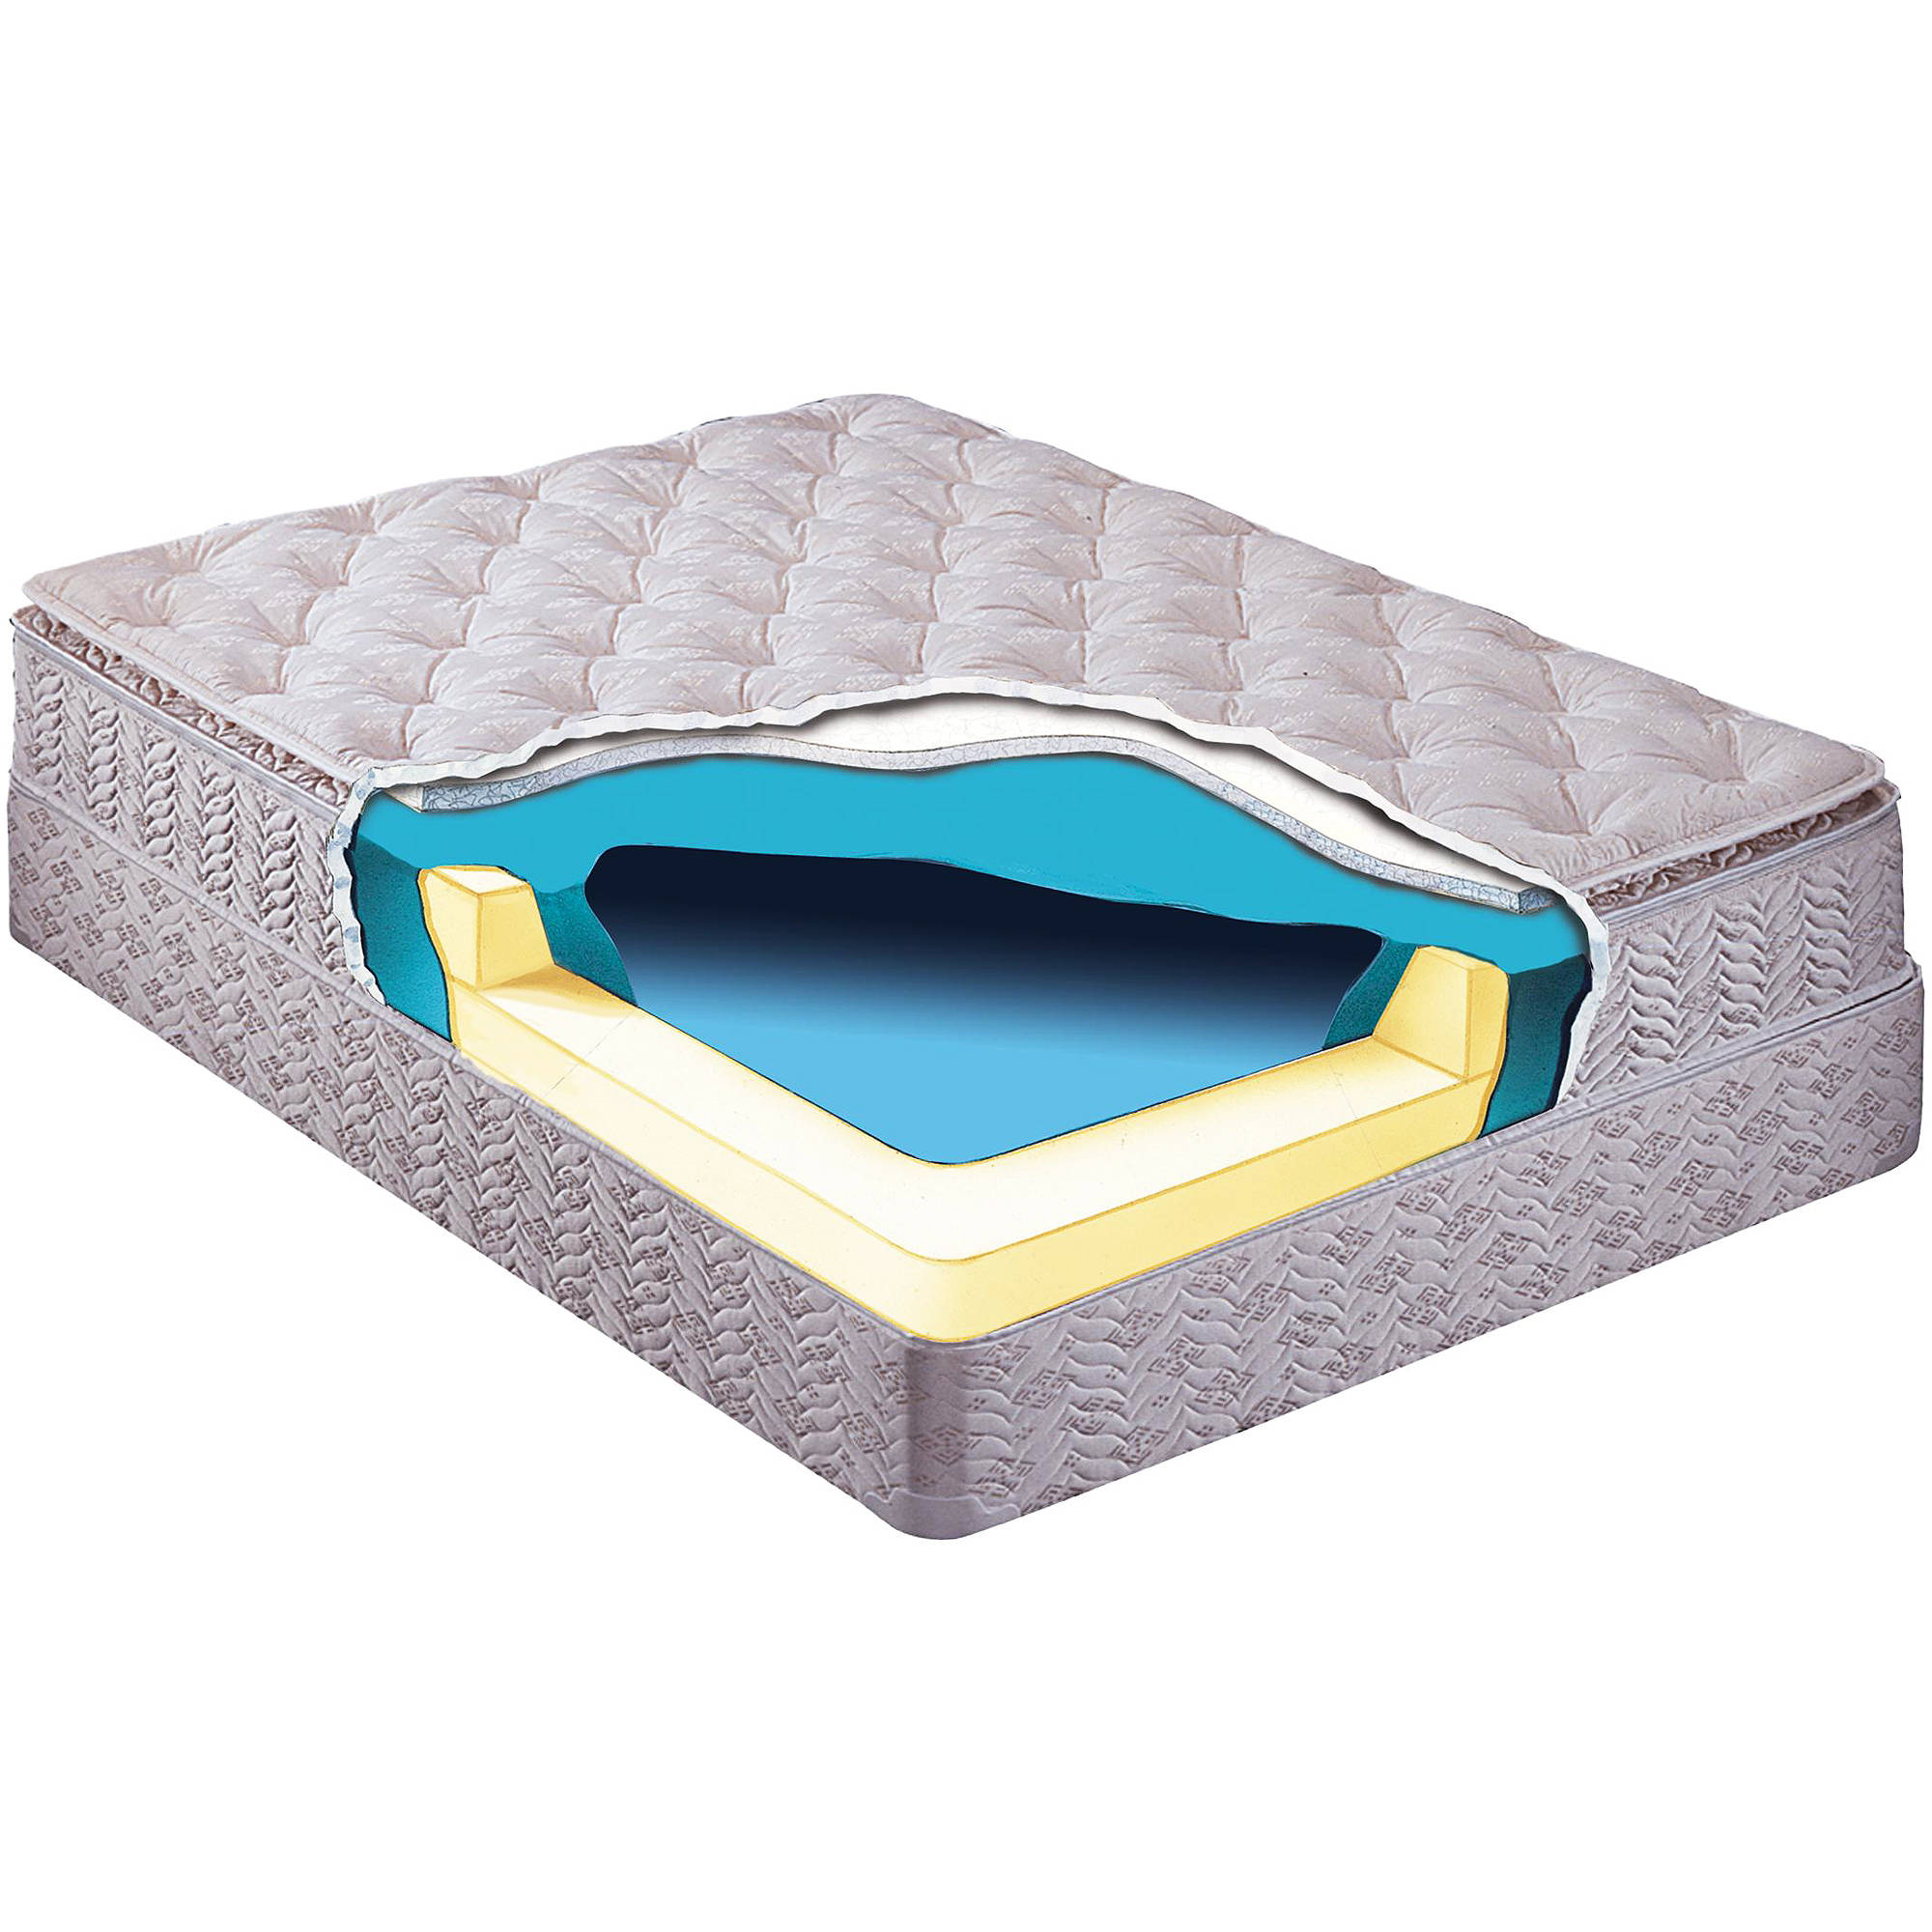 Venus Waterbed Freeflow Mattress